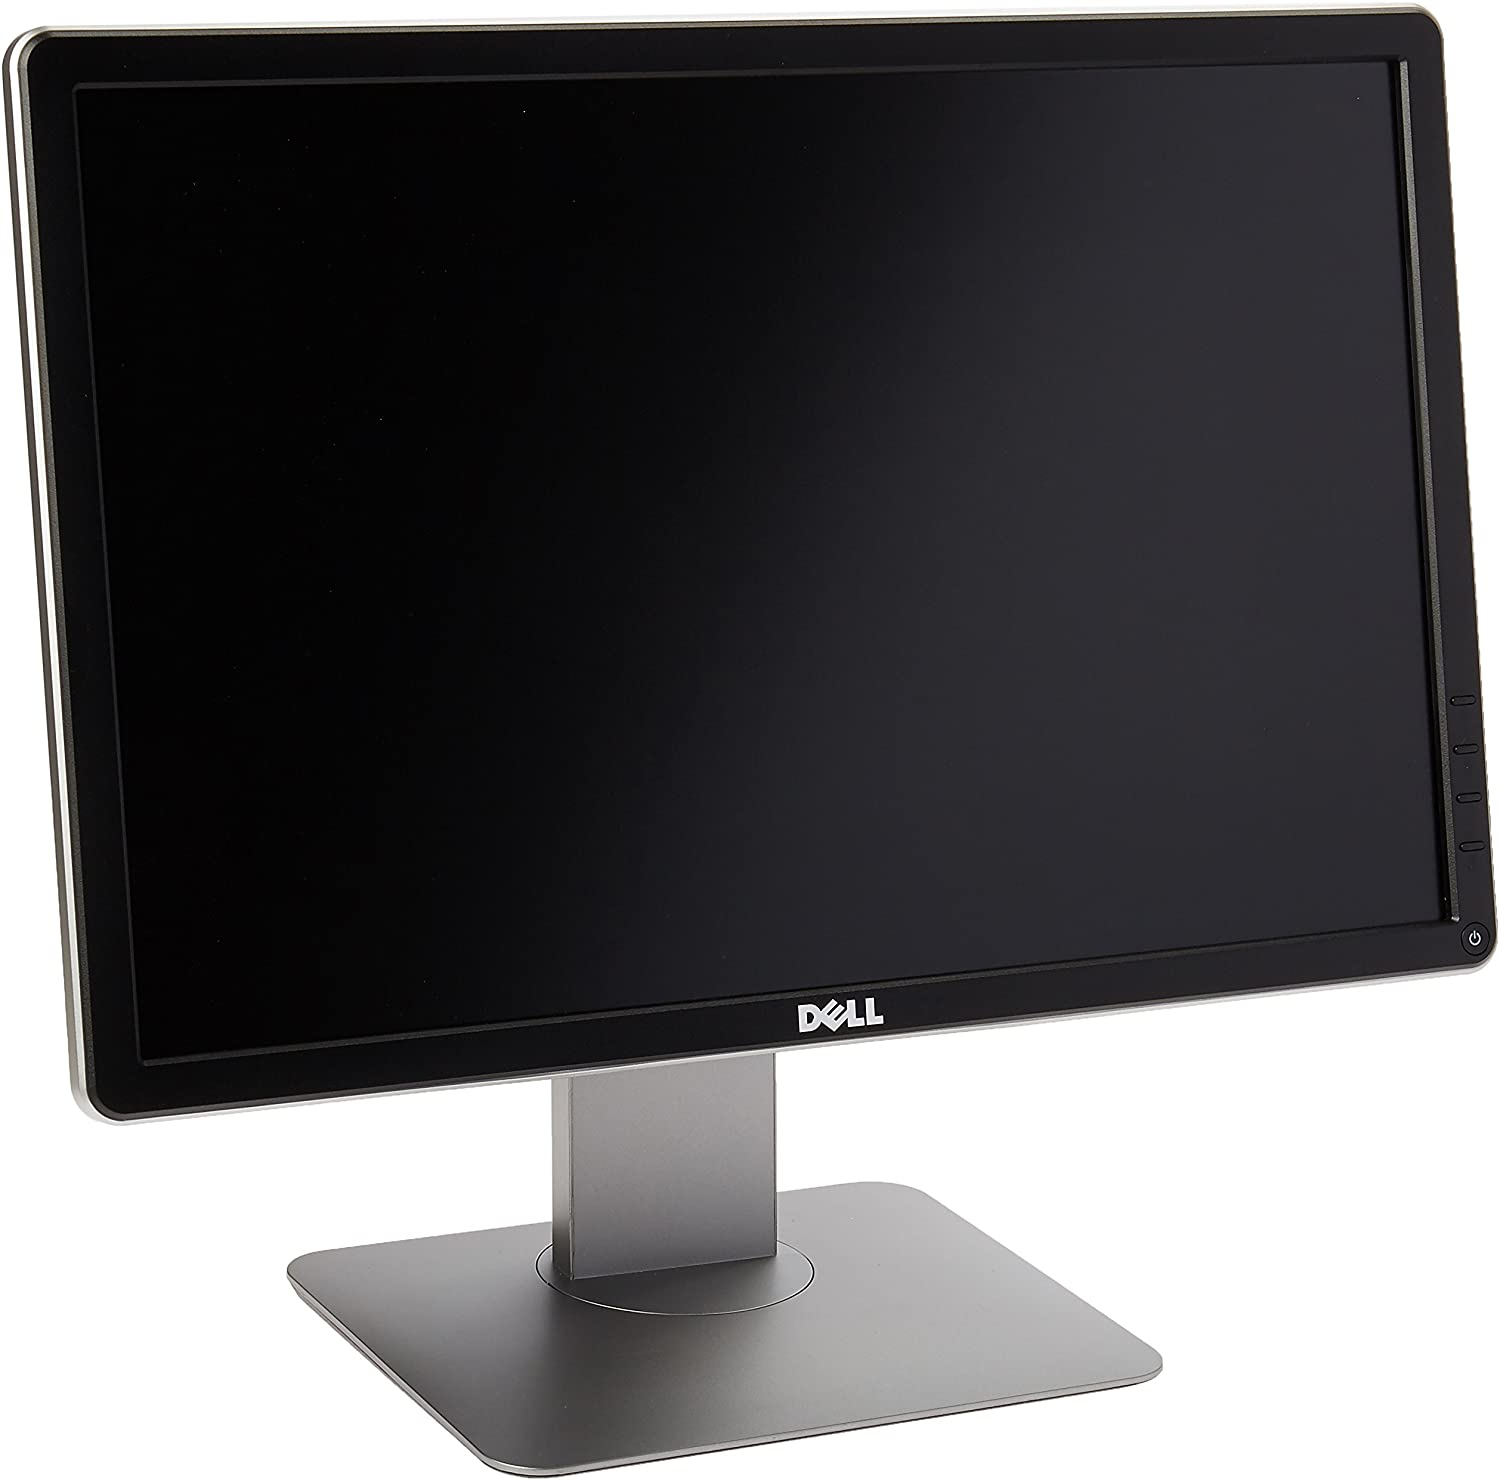 "Dell P2016 20"" Screen LED-Lit Monitor,Black"